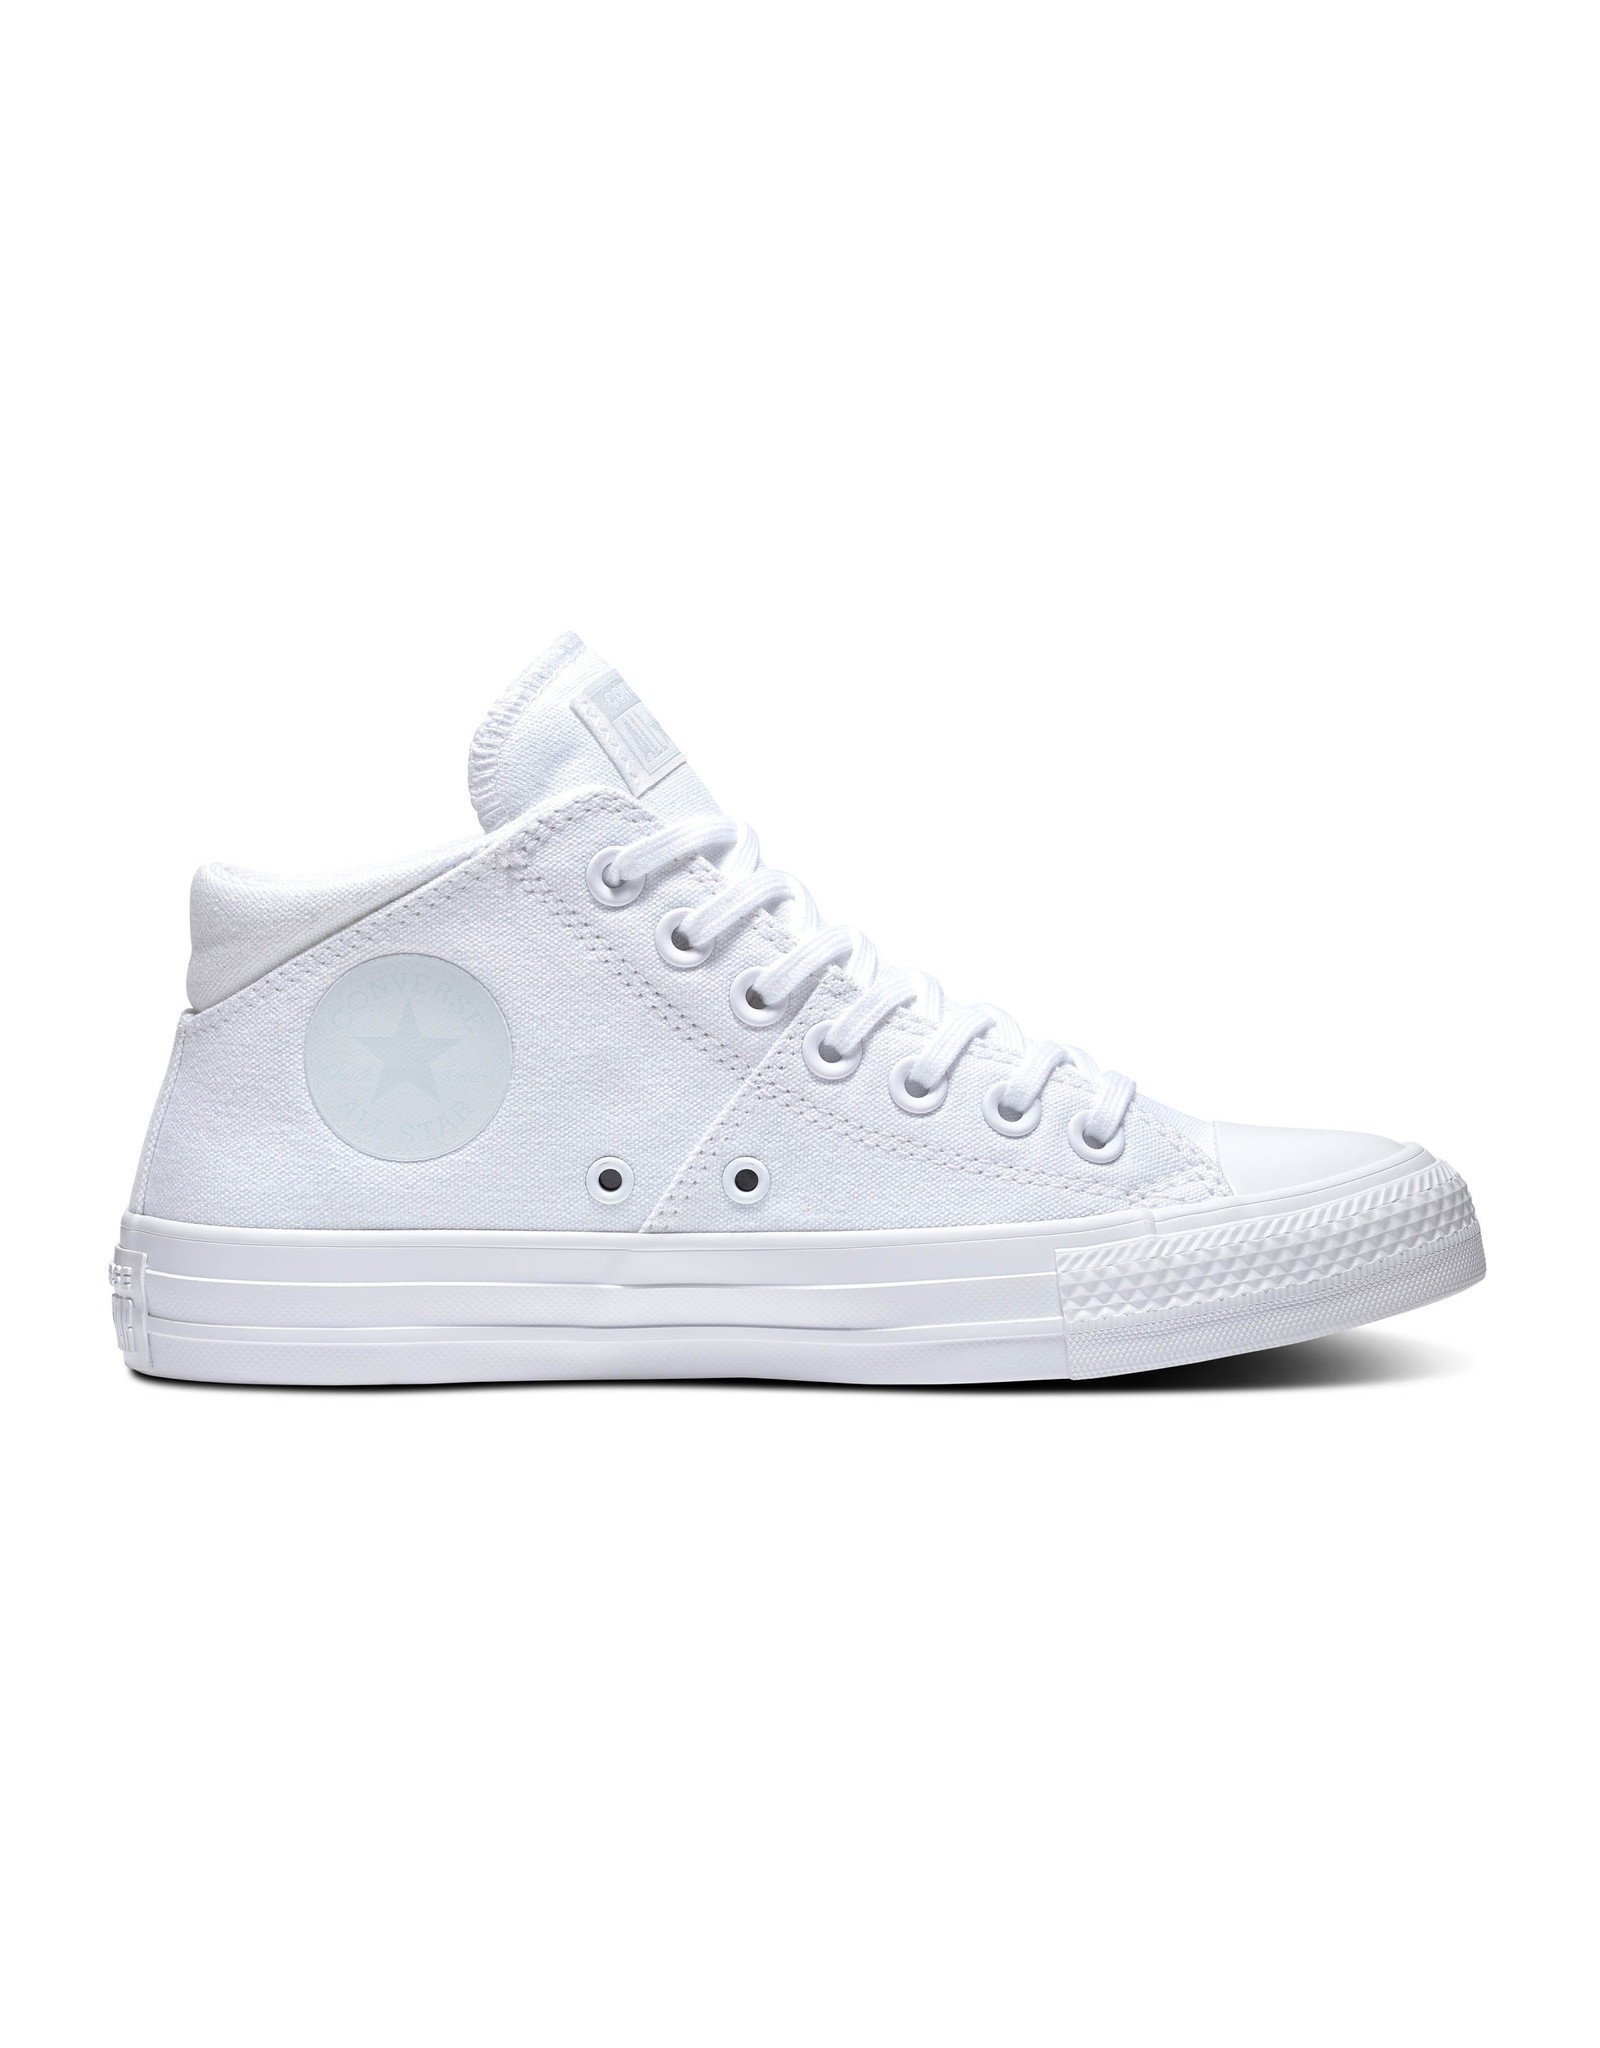 CONVERSE CHUCK TAYLOR MADISON MID WHITE/WHITE/WHITE C14MMAW-568100C